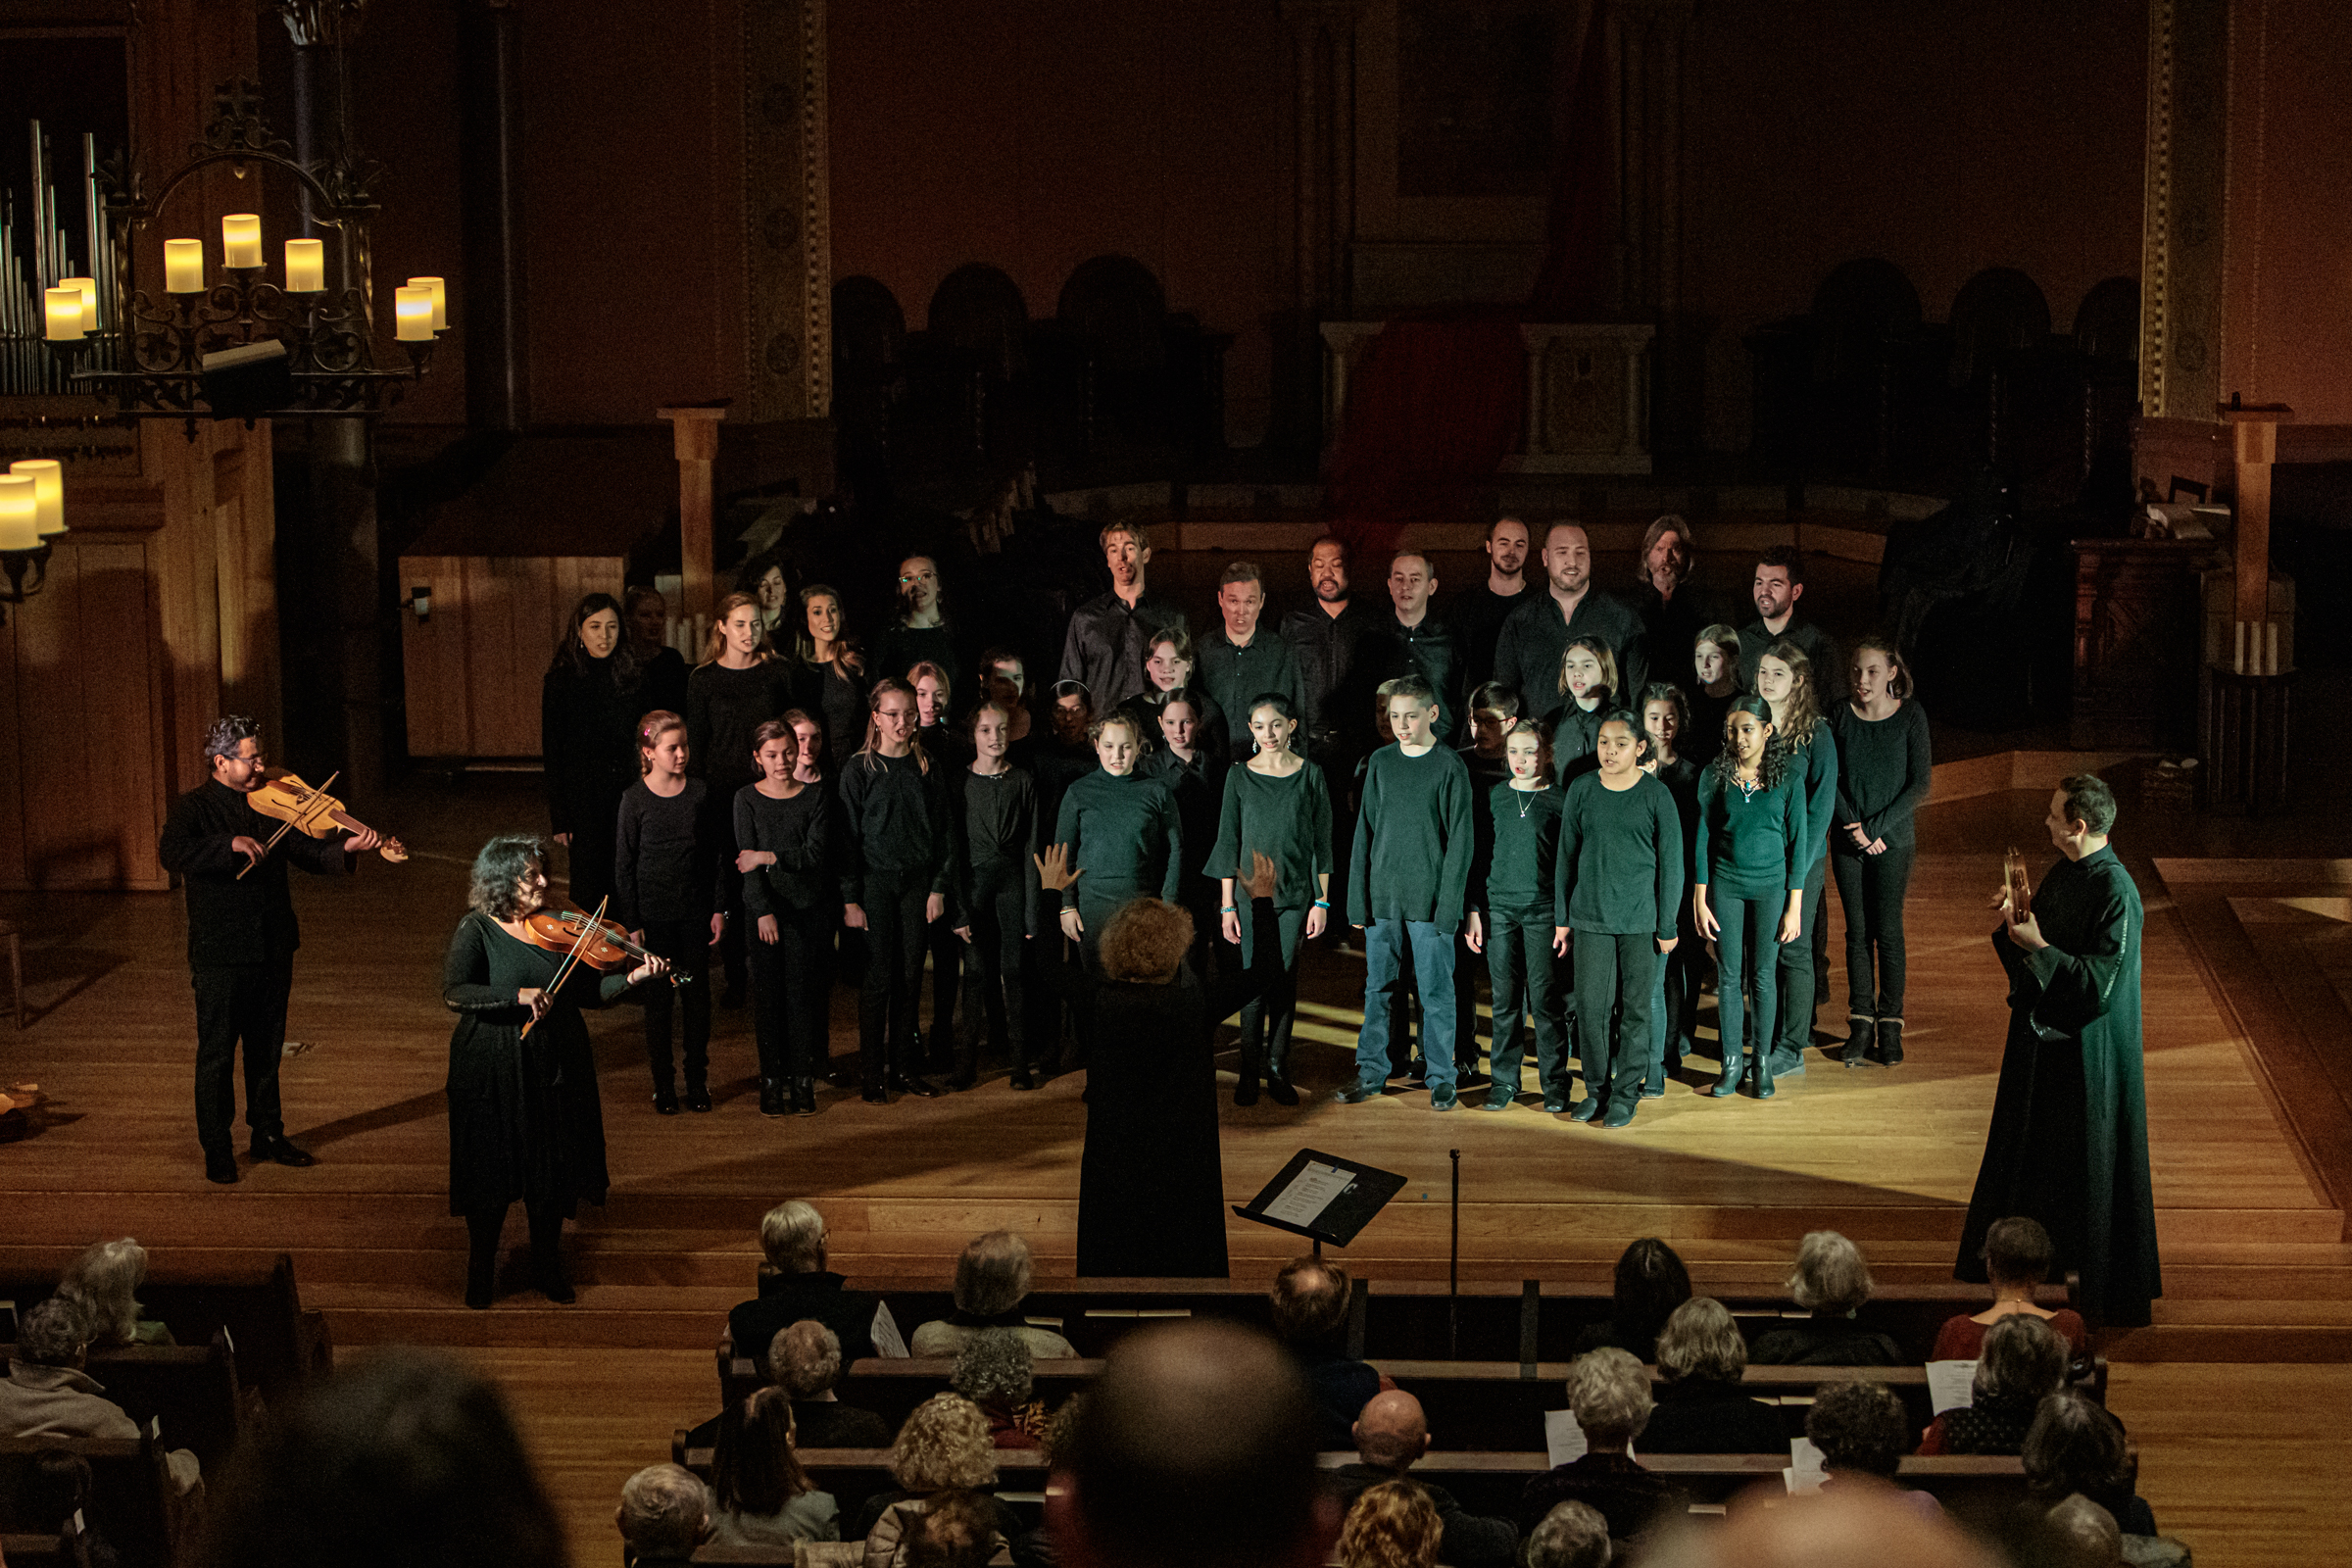 """The Boston Camerata presented """"Daniel - A Medieval Masterpiece Revisited"""" at First Church in Cambridge on Jan. 25, 2020. (Courtesy Dan Busler)"""